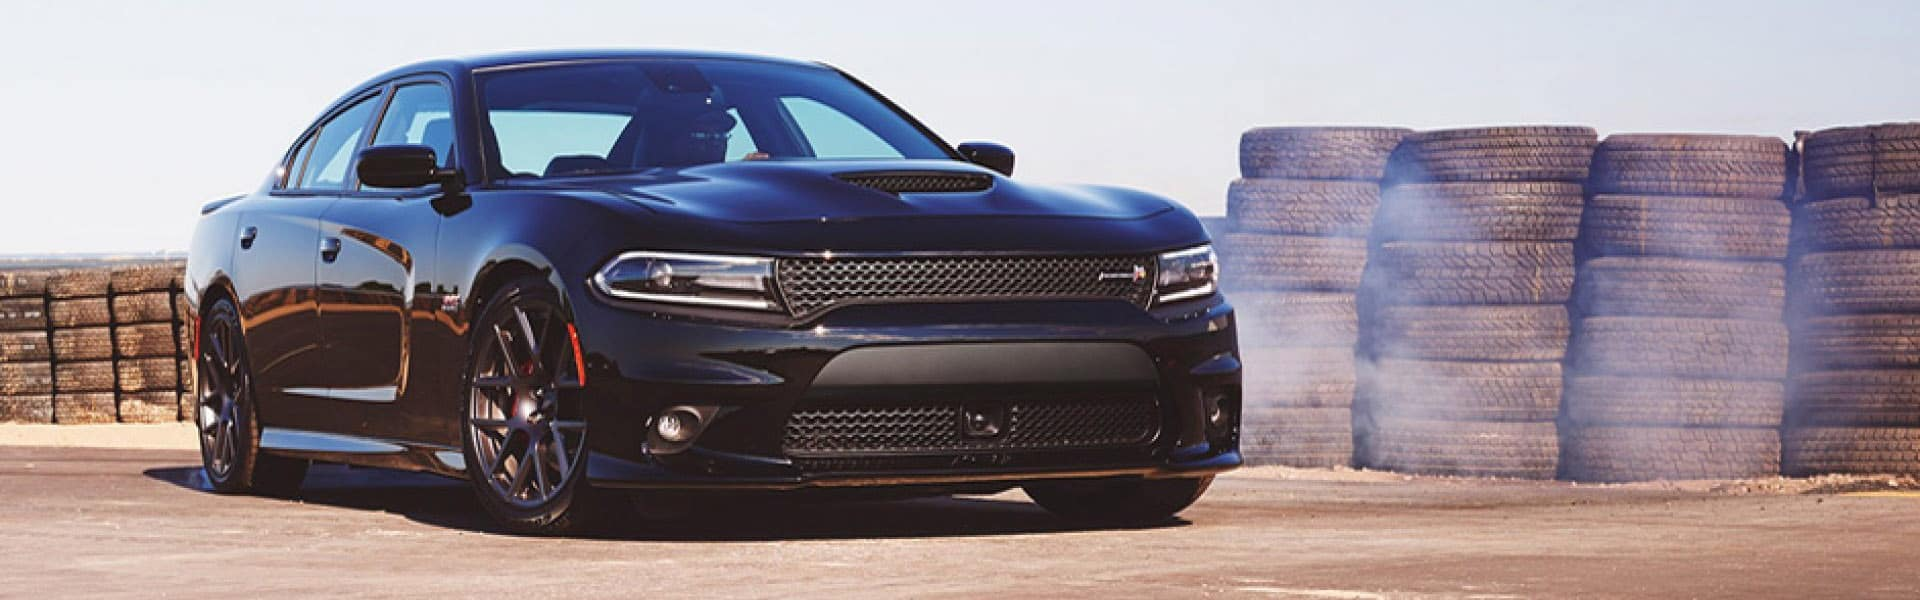 2019 Dodge Charger Dodge Dealer Indianapolis In Eastgate